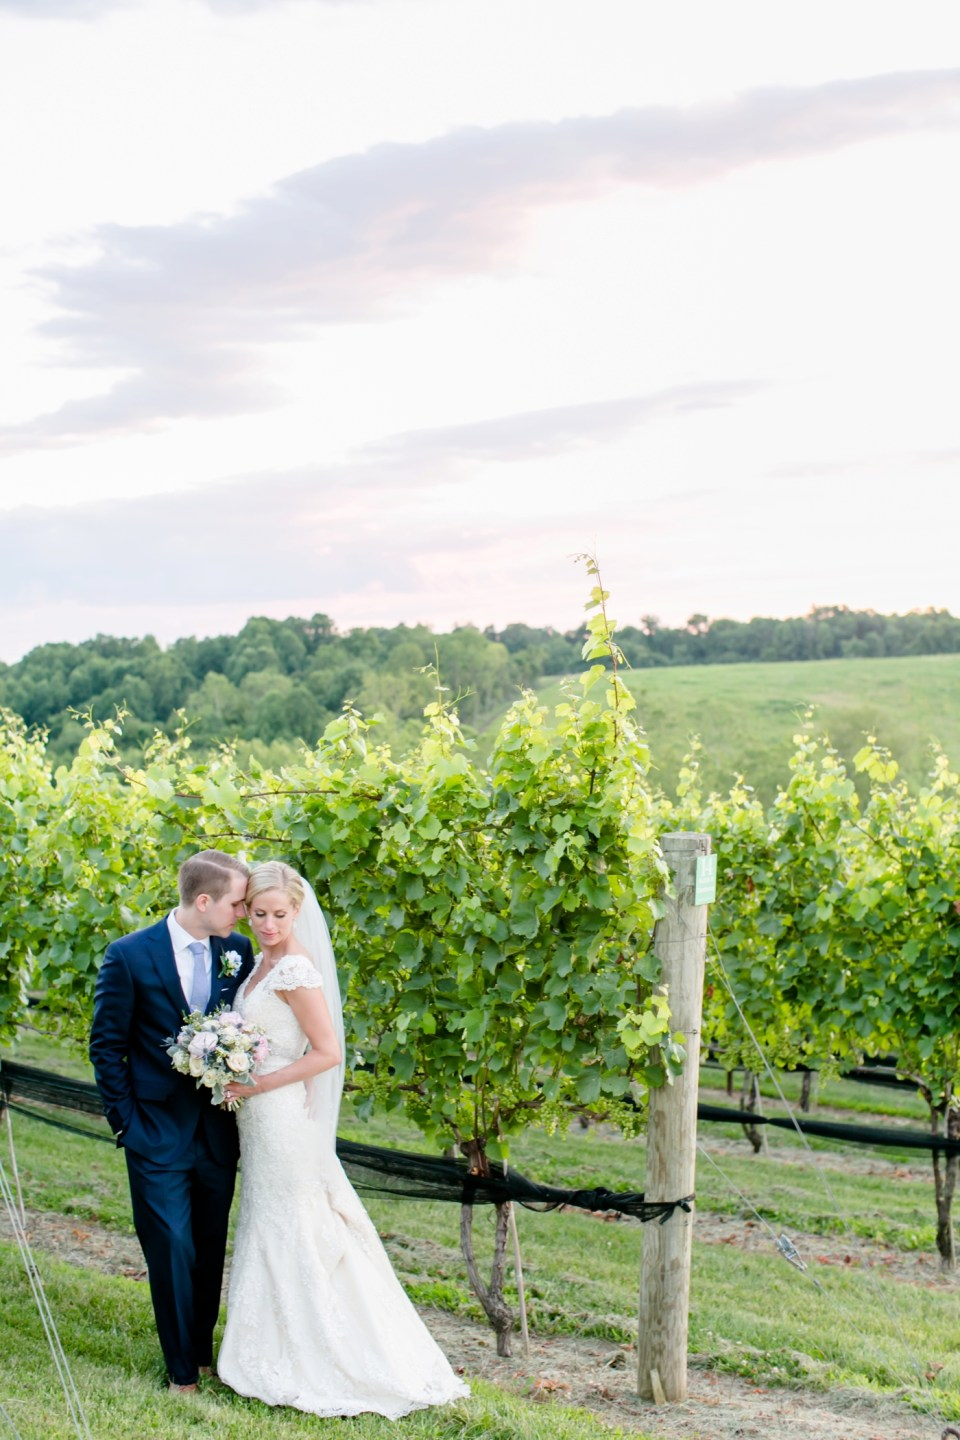 56A-Stone-Tower-Winery-Summer-Wedding-GG-1204